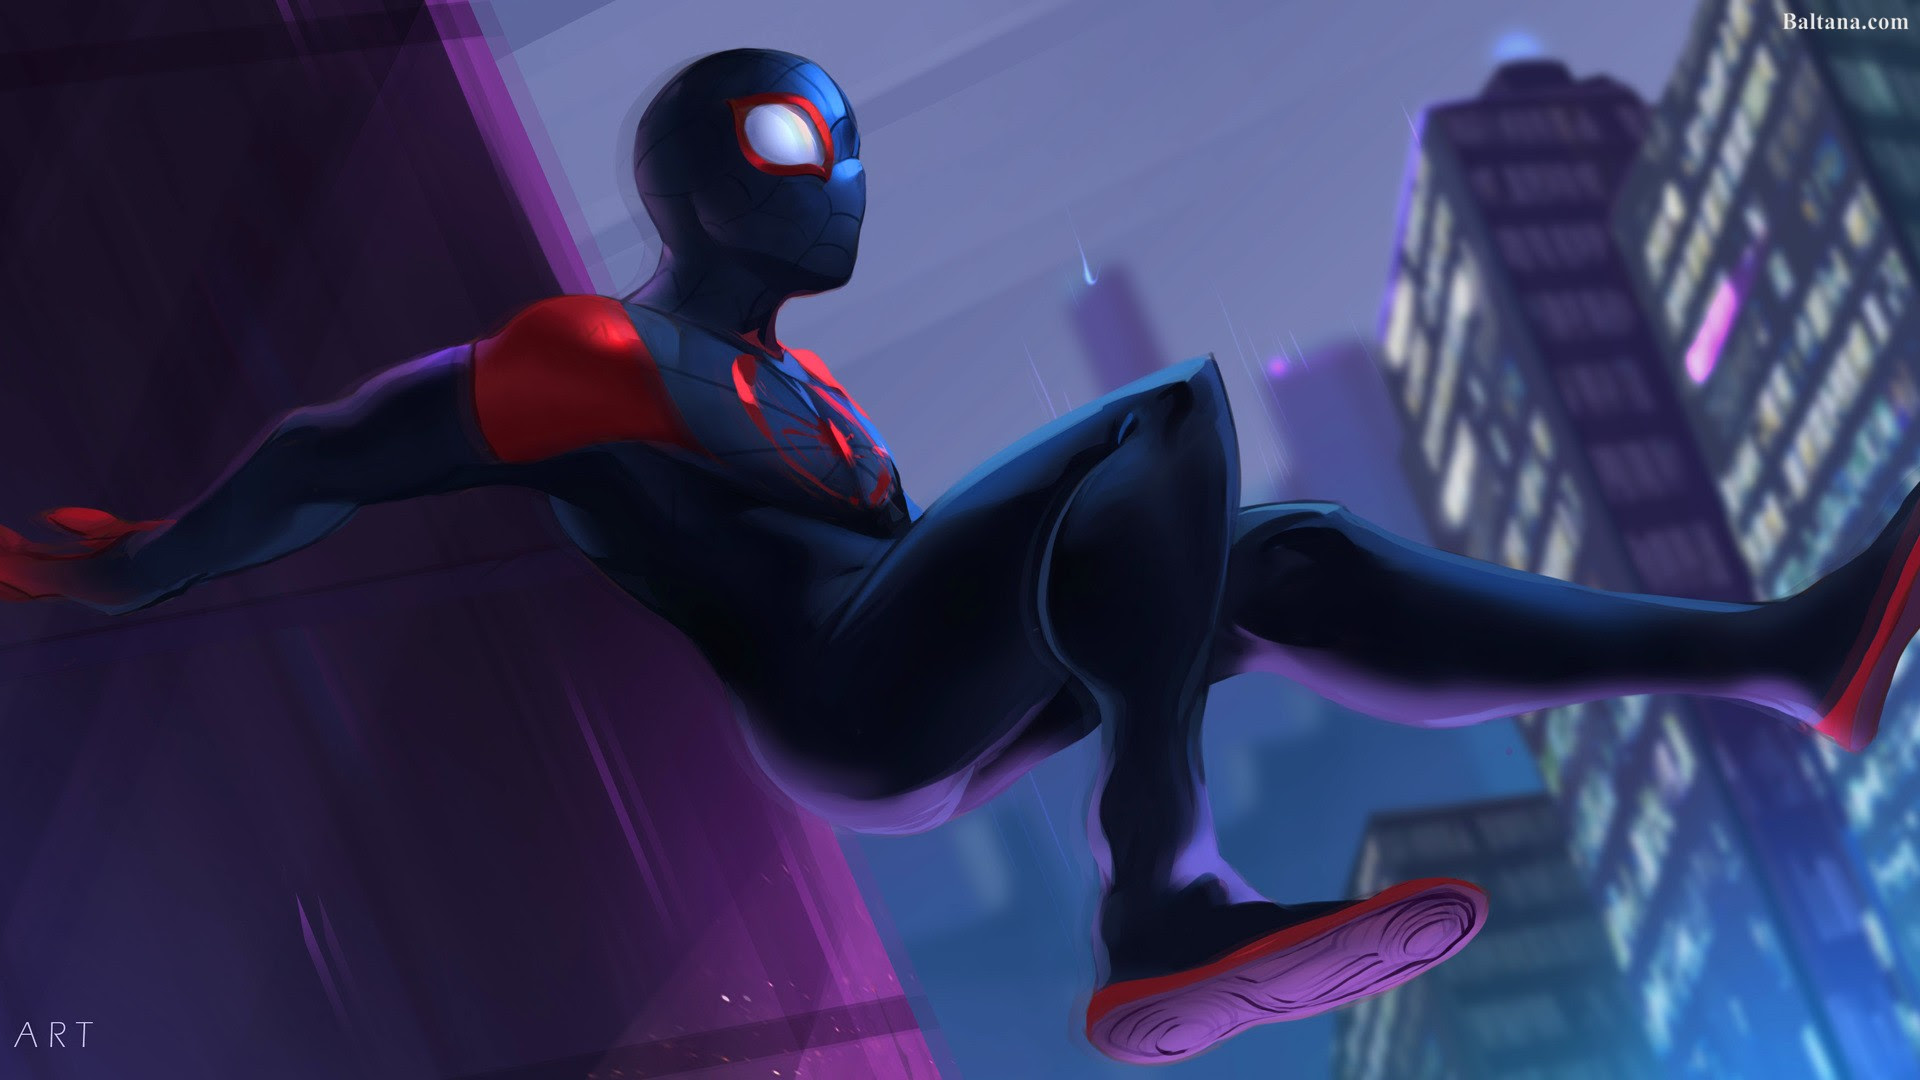 Spiderman Into The Spider Verse Hd Wallpapers 29948 Baltana